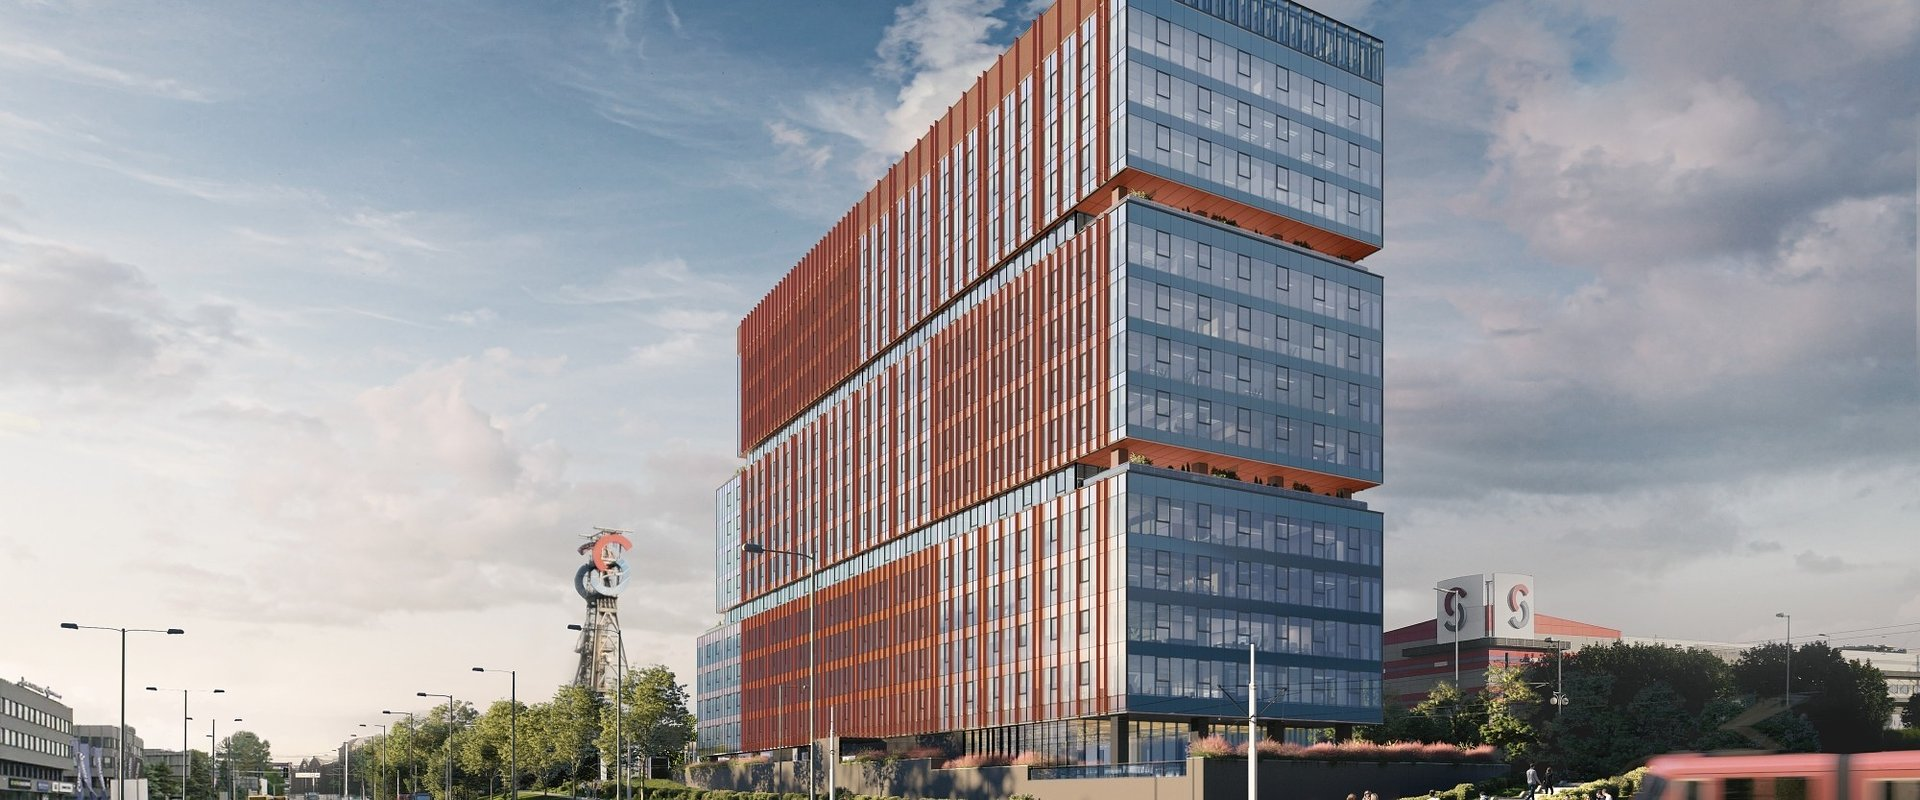 JLL to lease Ghelamco's Craft office building in Katowice